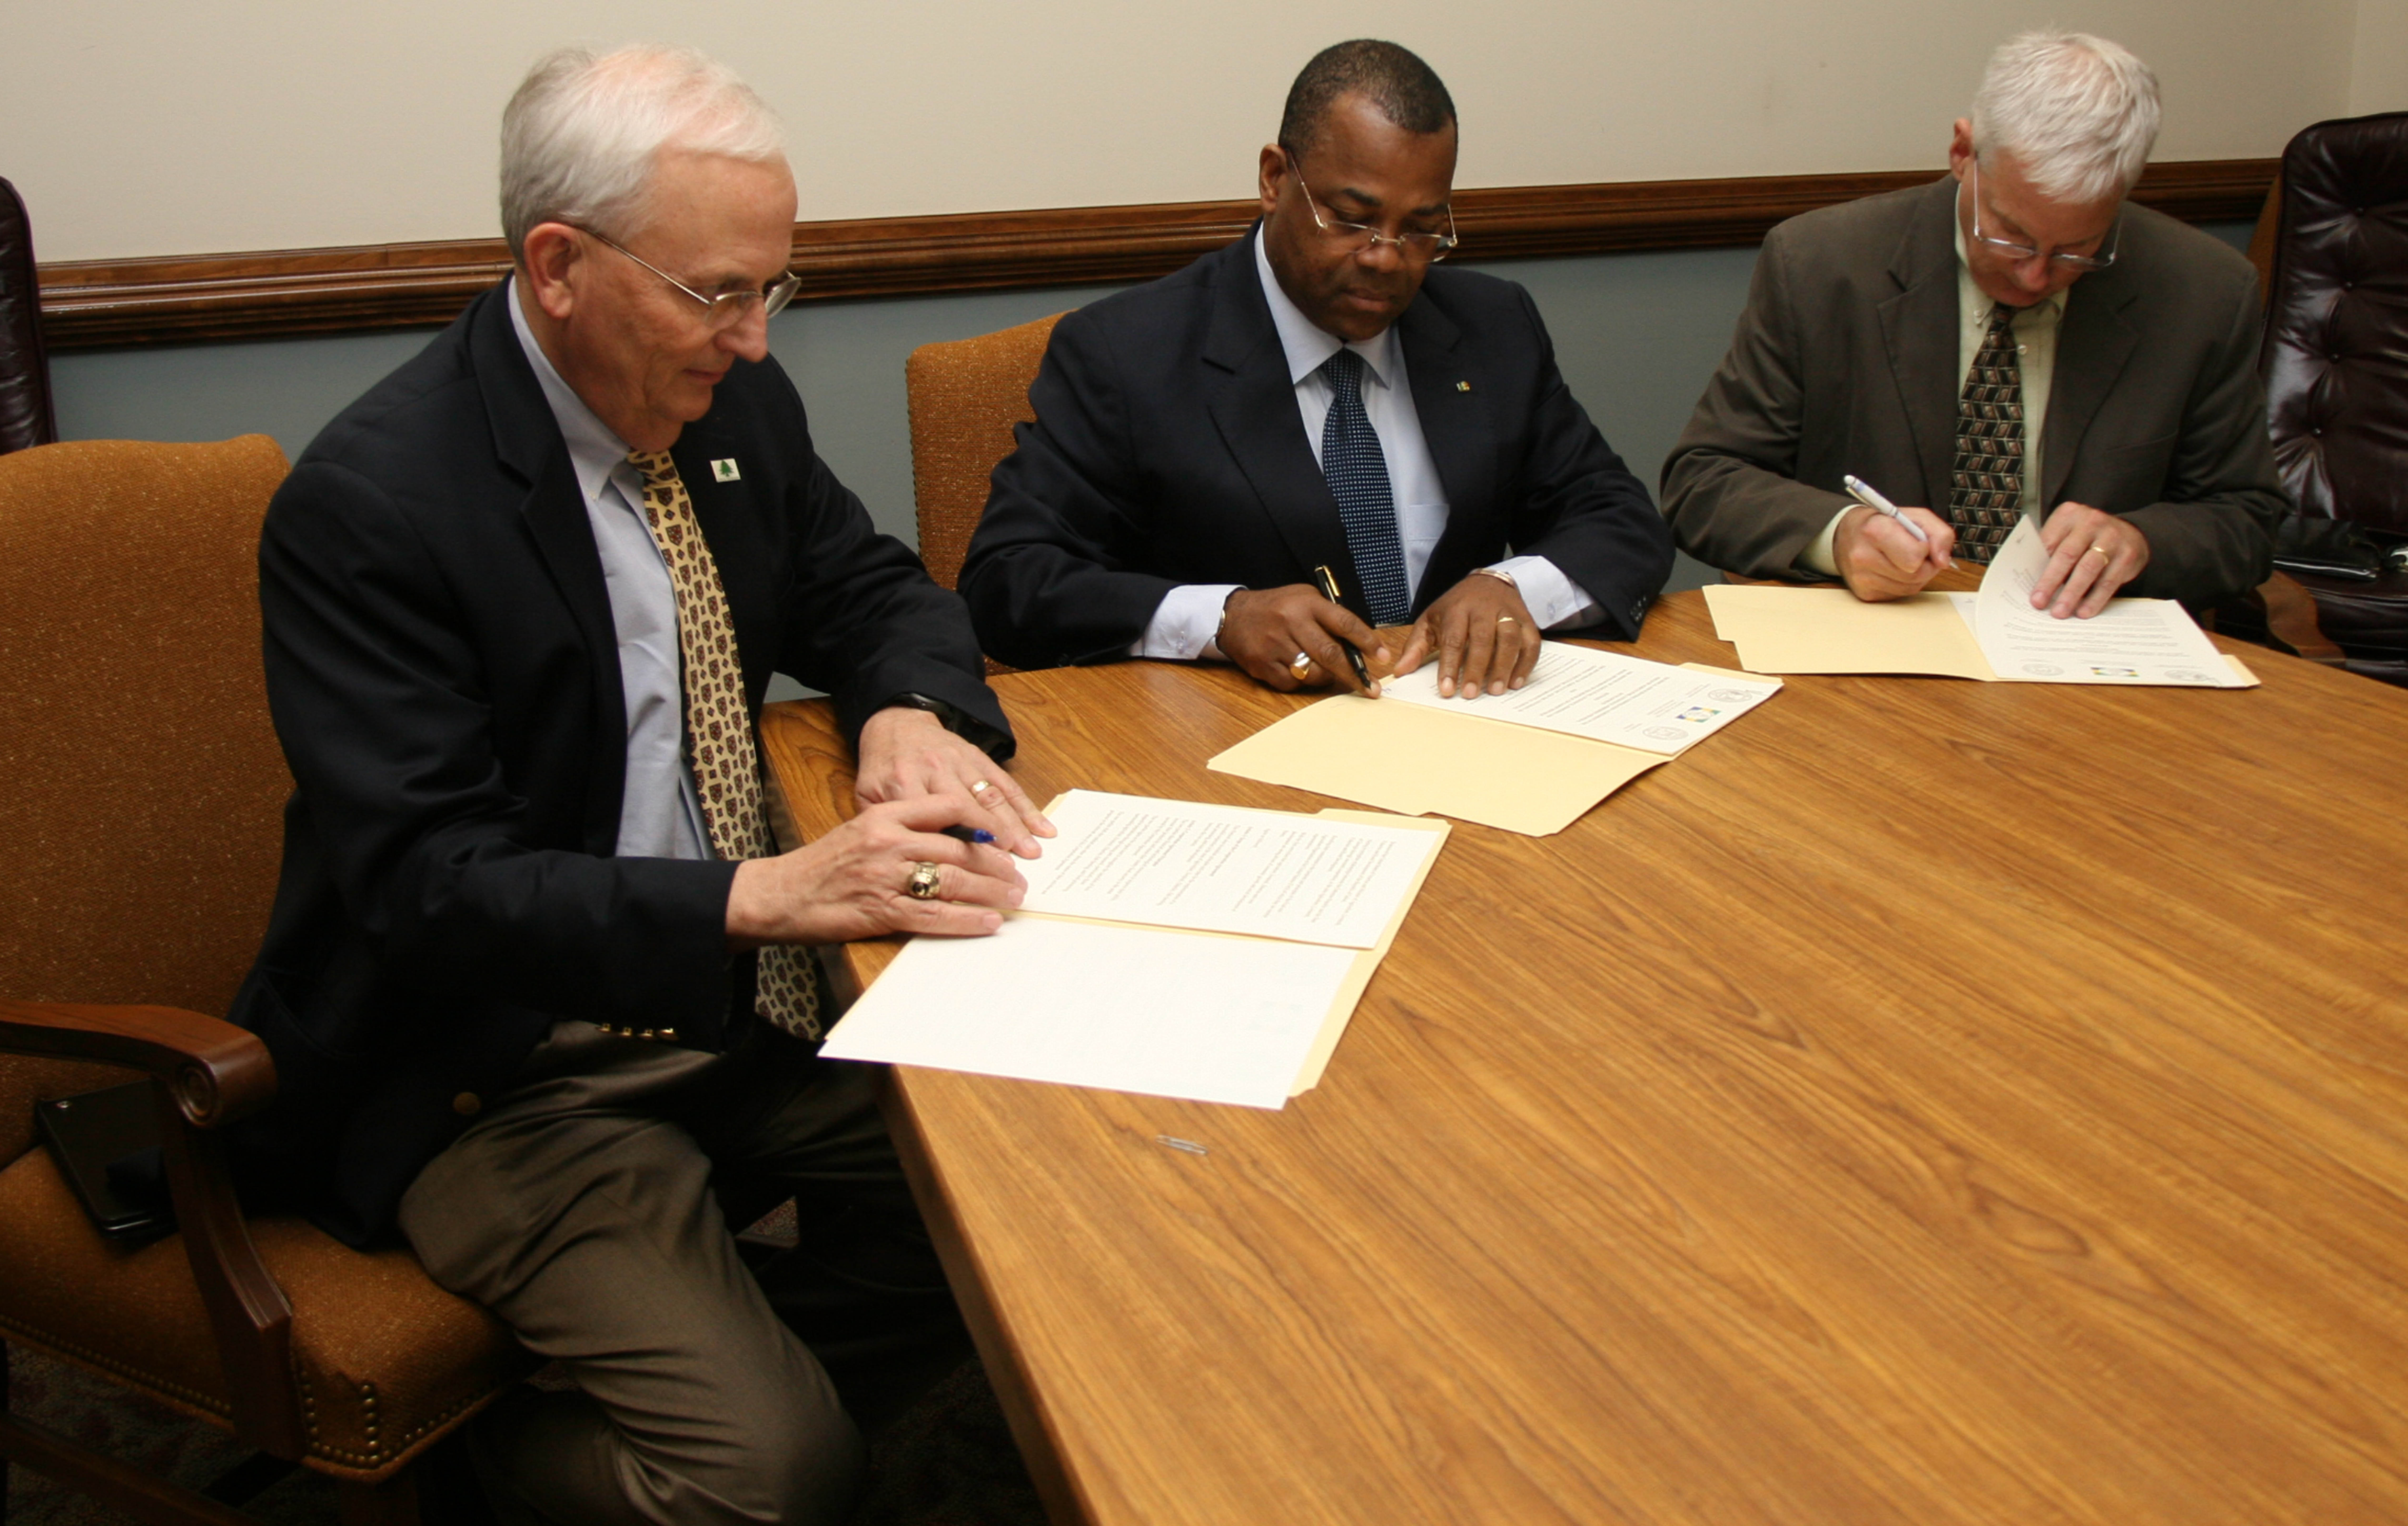 Georgia Commissioner of Agriculture Gary Black, Gabon's Minister of Agriculture, Livestock Fisheries and Rural Development, Julien Nkoghe-Bekale and UGA College of Agriculture and Environmental Sciences Dean J. Scott Angle sign an agreement promising future cooperation on agricultural development projects on Nov. 20.